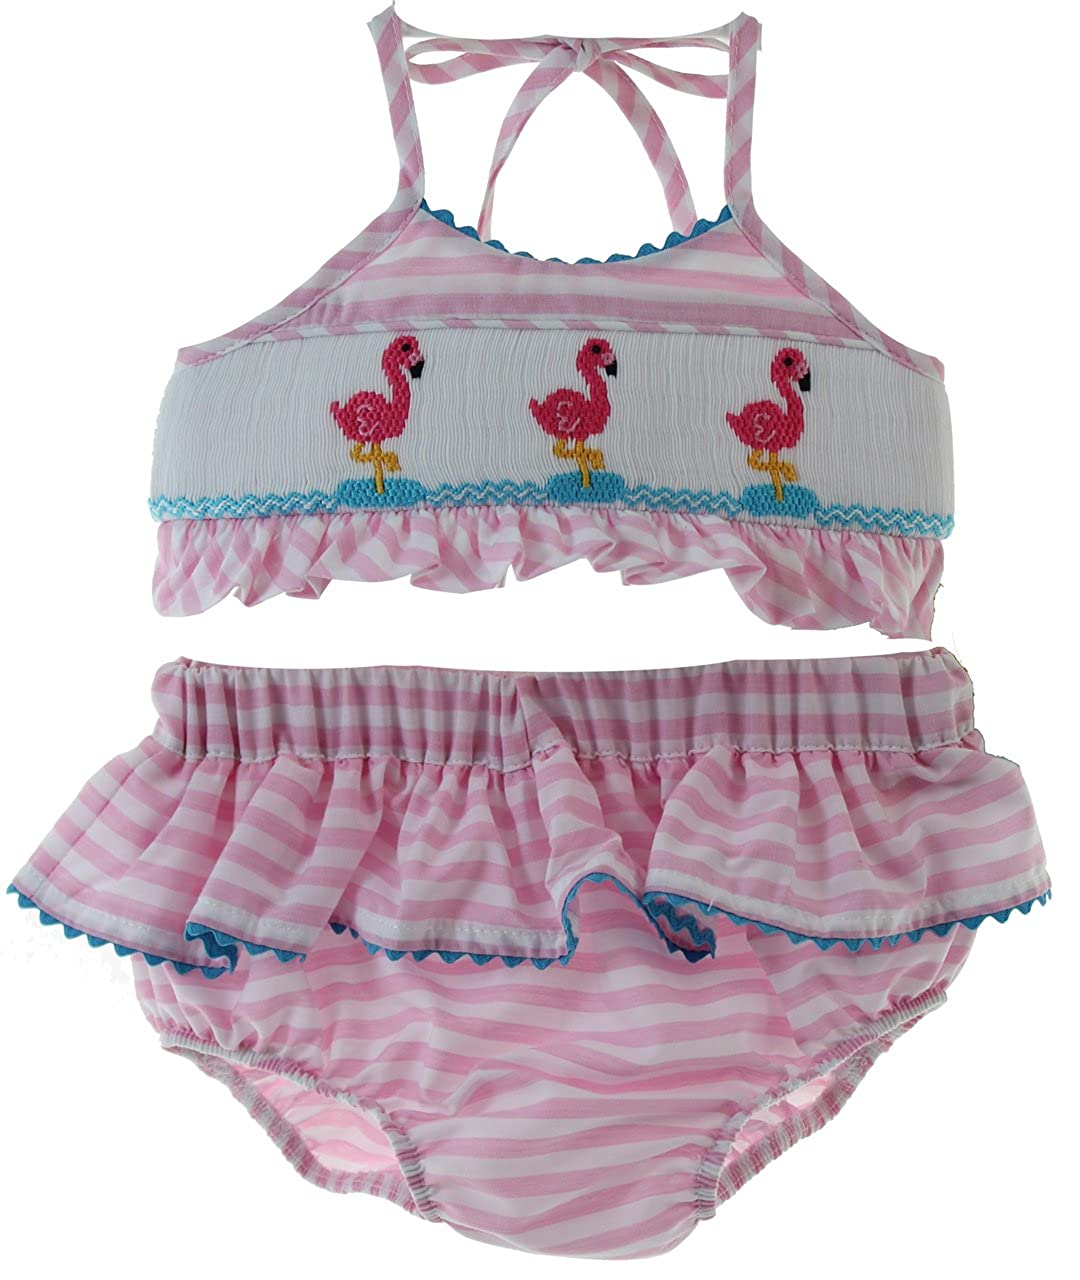 9005345937d82 Precious infant and toddler girls smocked two piece bathing suit in pink  gingham fabric with turquoise trim and pink flamingo smocking.